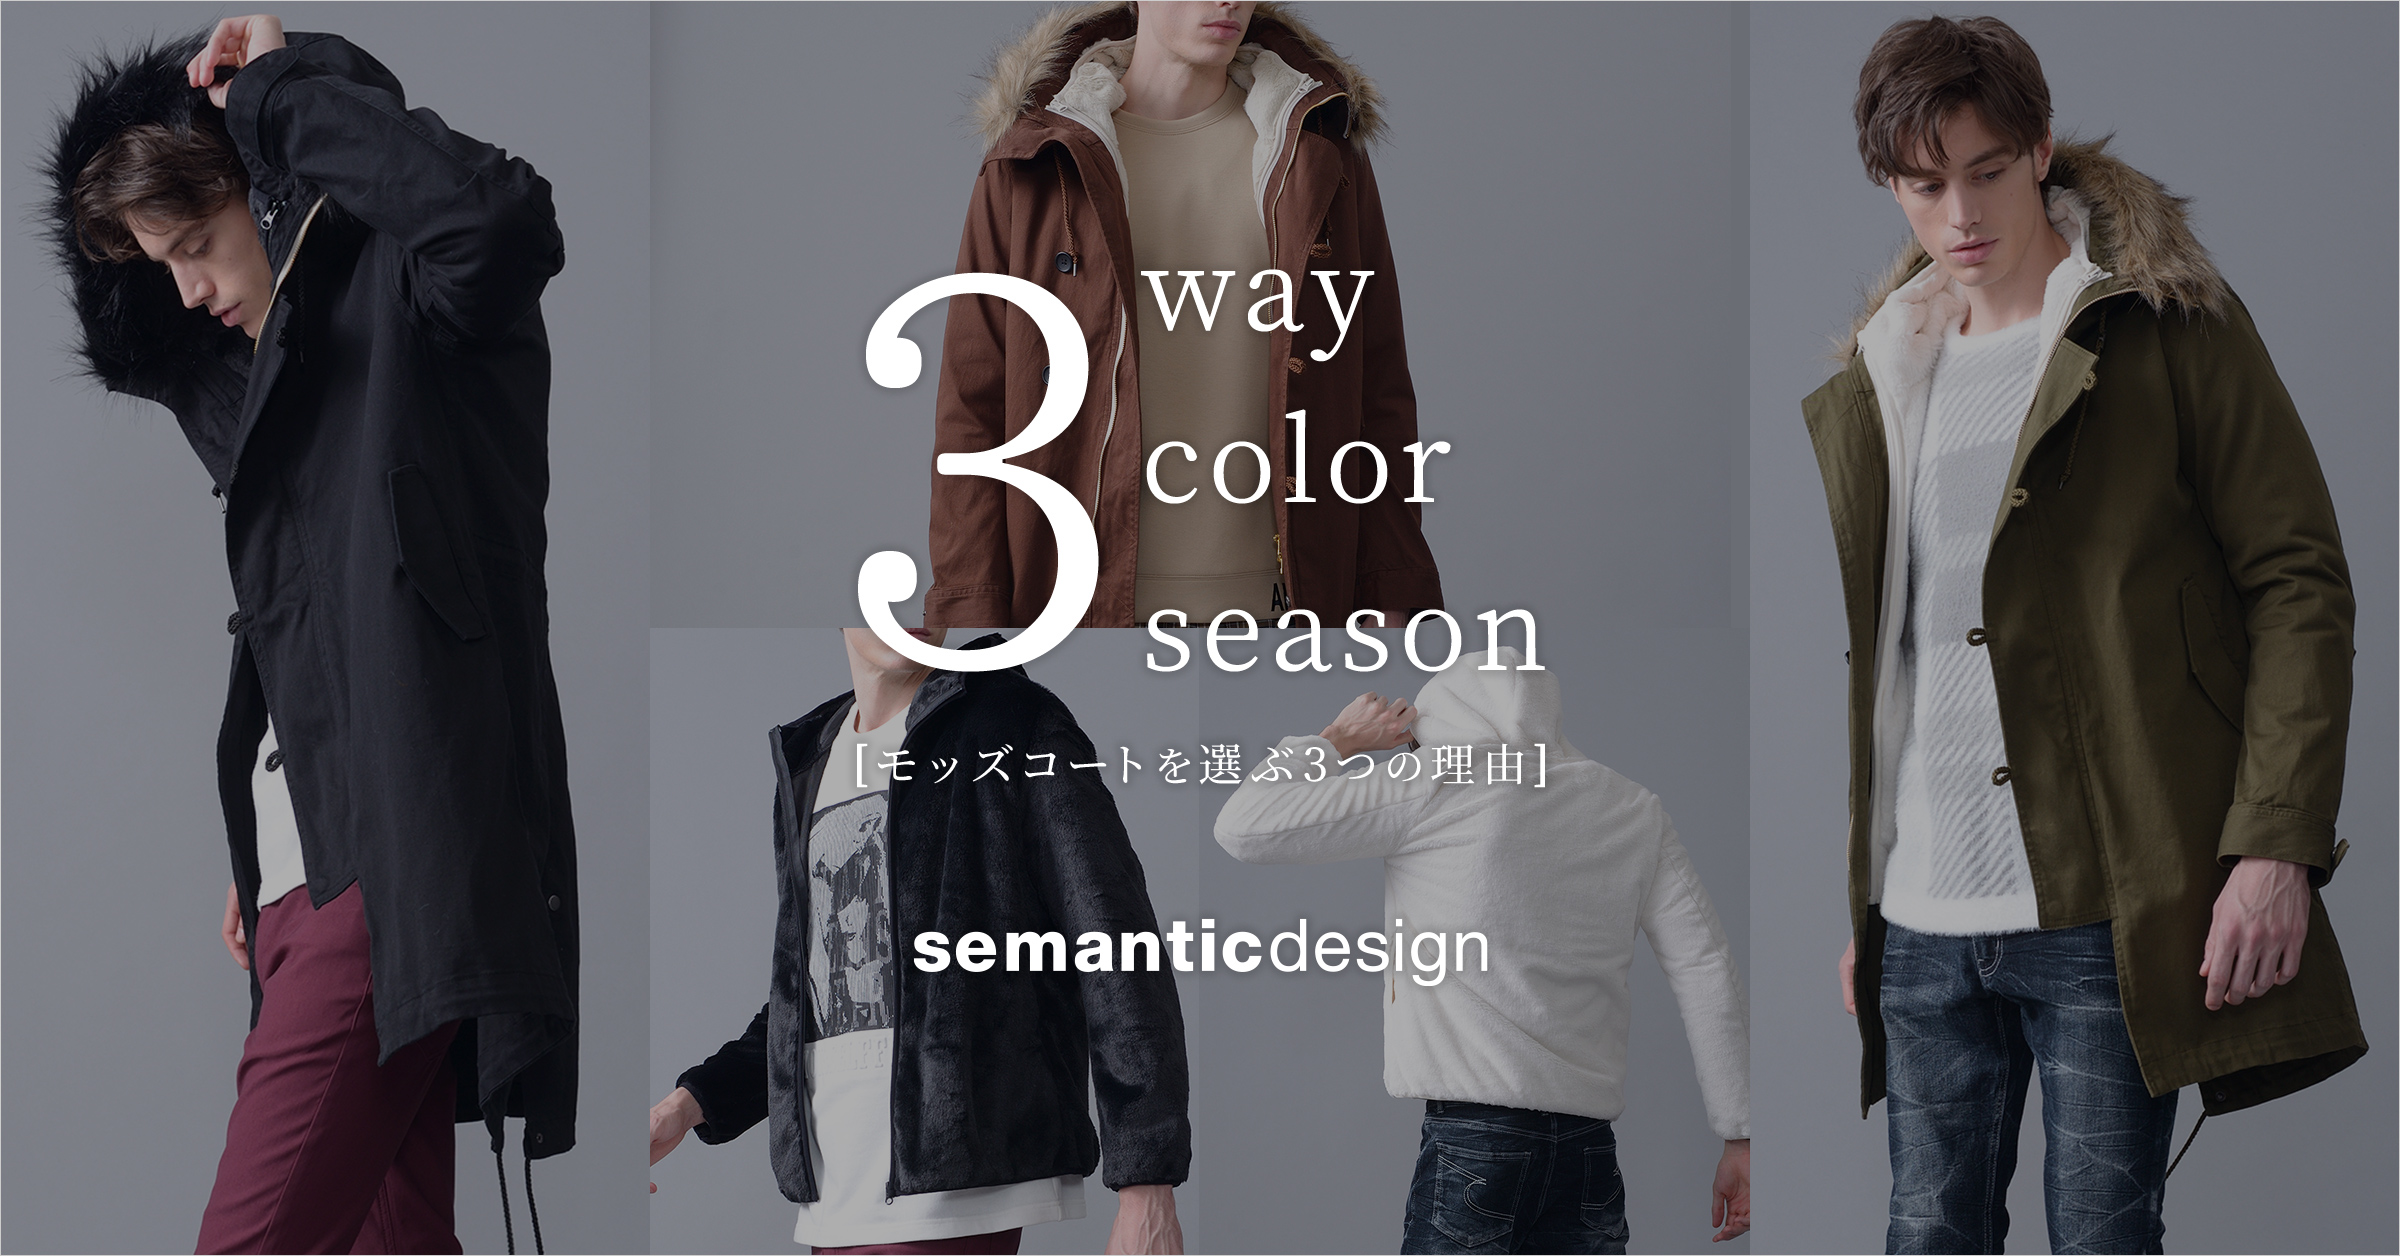 semanticdesign(セマンティックデザイン) shaggy hoodie×mods coat 3way Outer